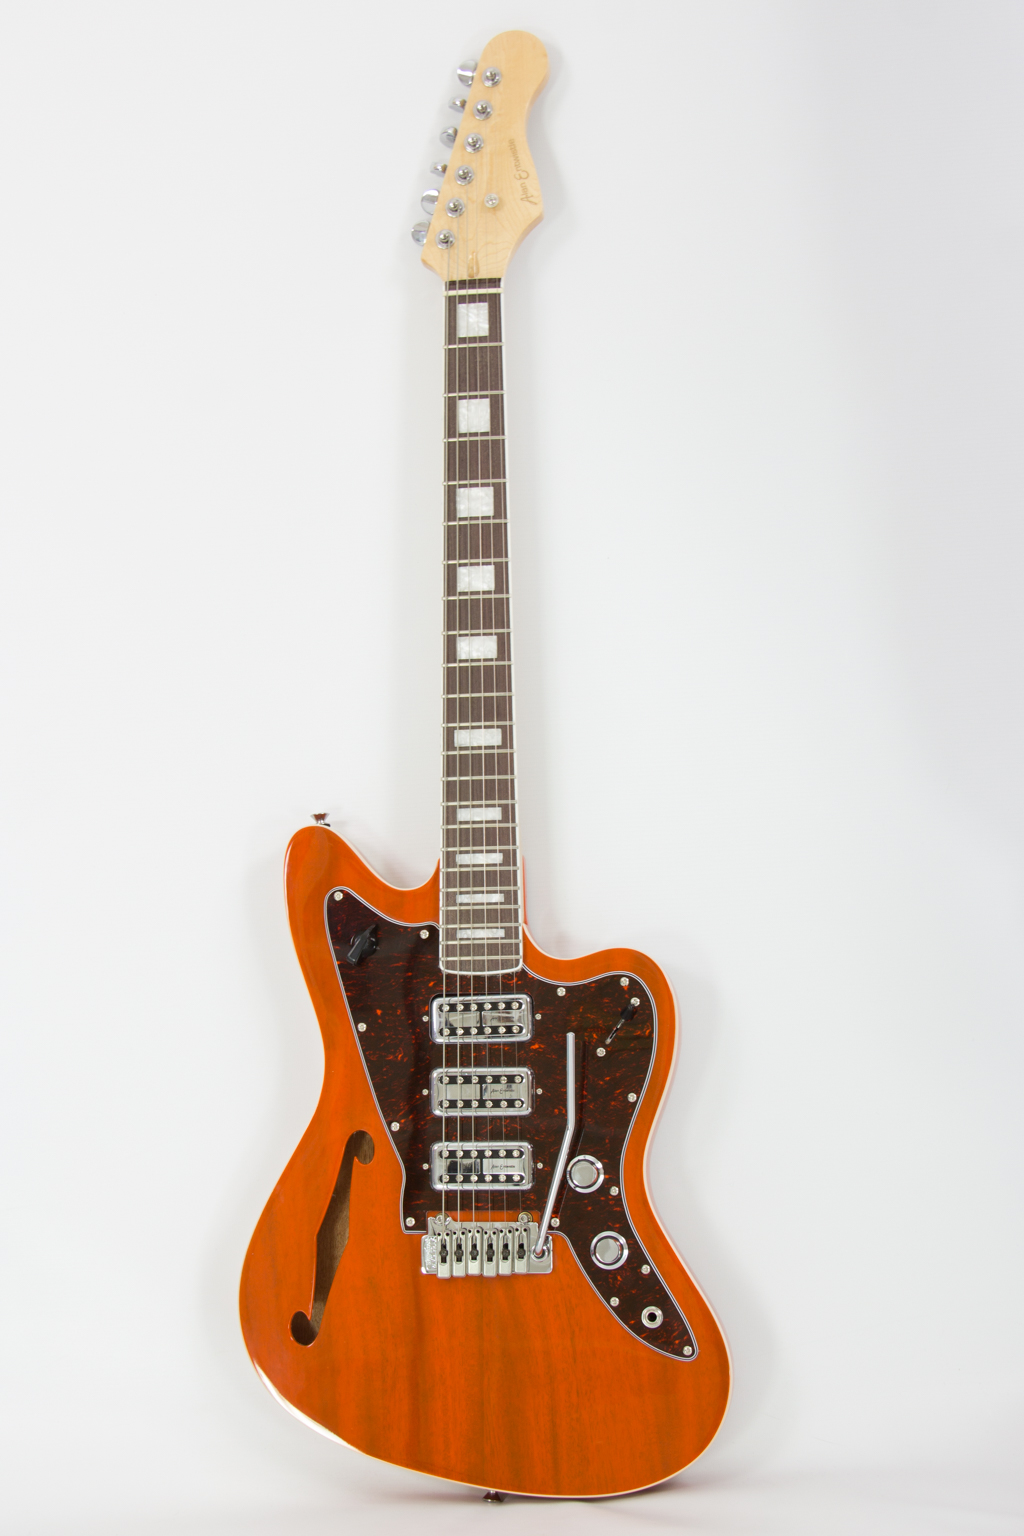 Alan Entwistle Guitar